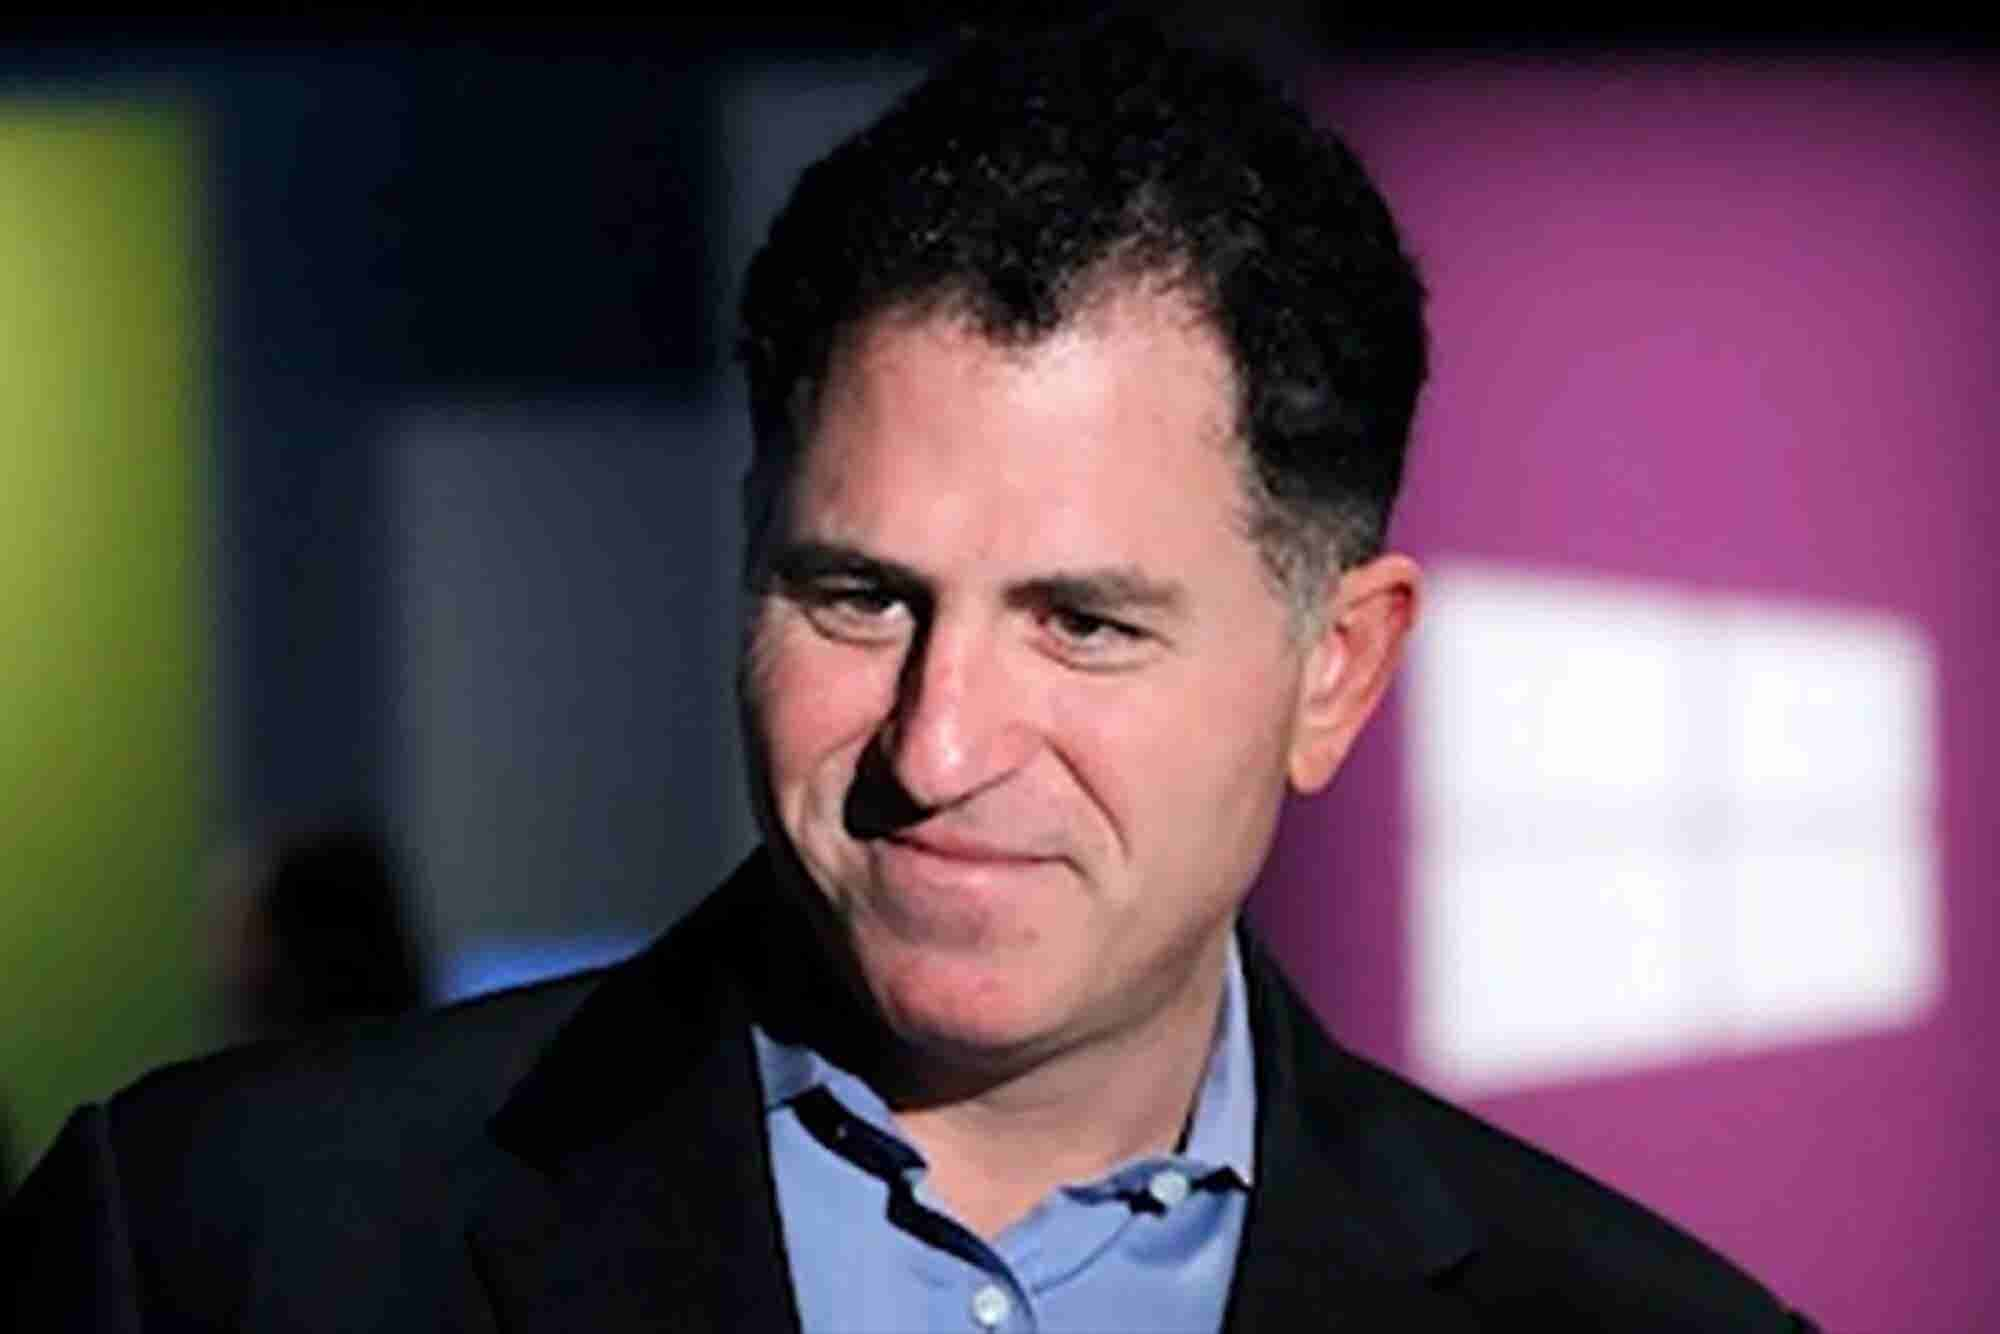 Dell Founder's New Buyout Bid Wins Initial Shareholder Approval